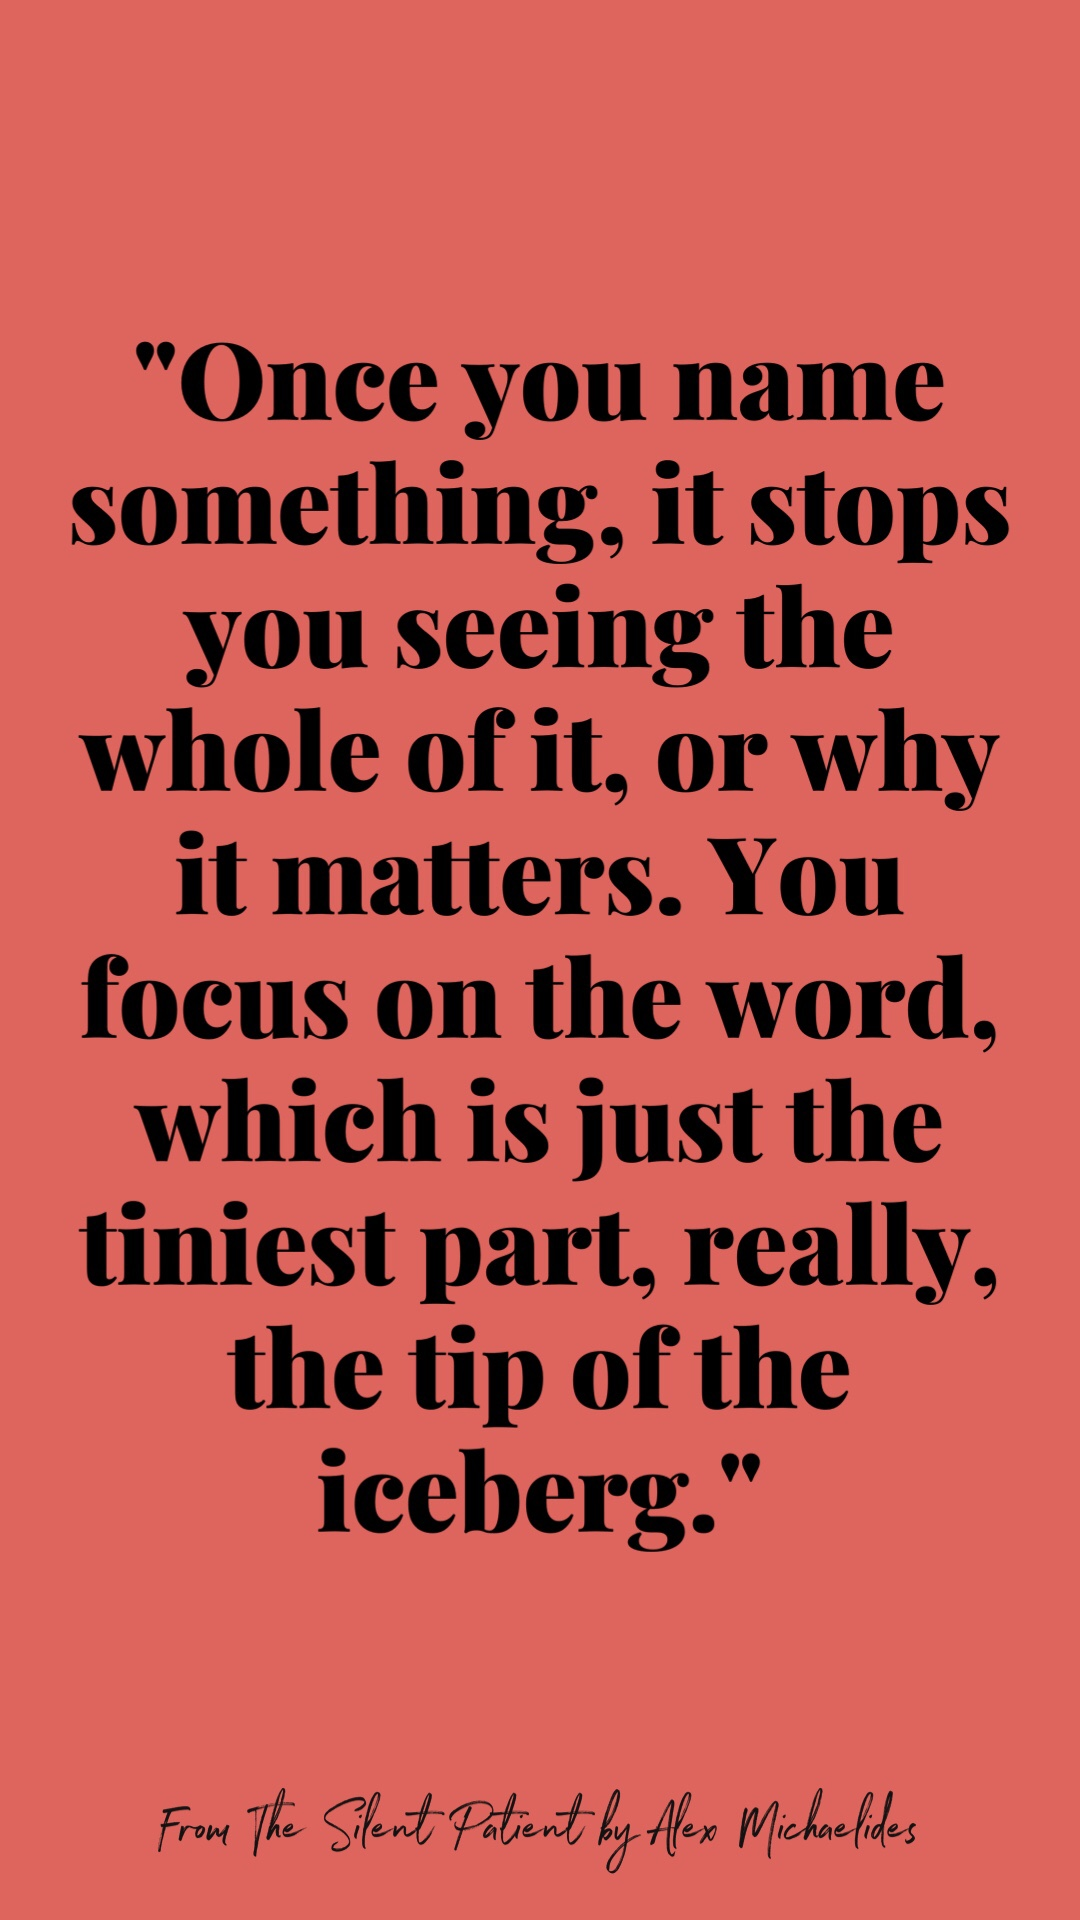 """Quote: """"Once you name something, it stops you seeing the whole of it, or why it matters. You focus on the word, which is just the tiniest part, really, the tip of an iceberg."""""""